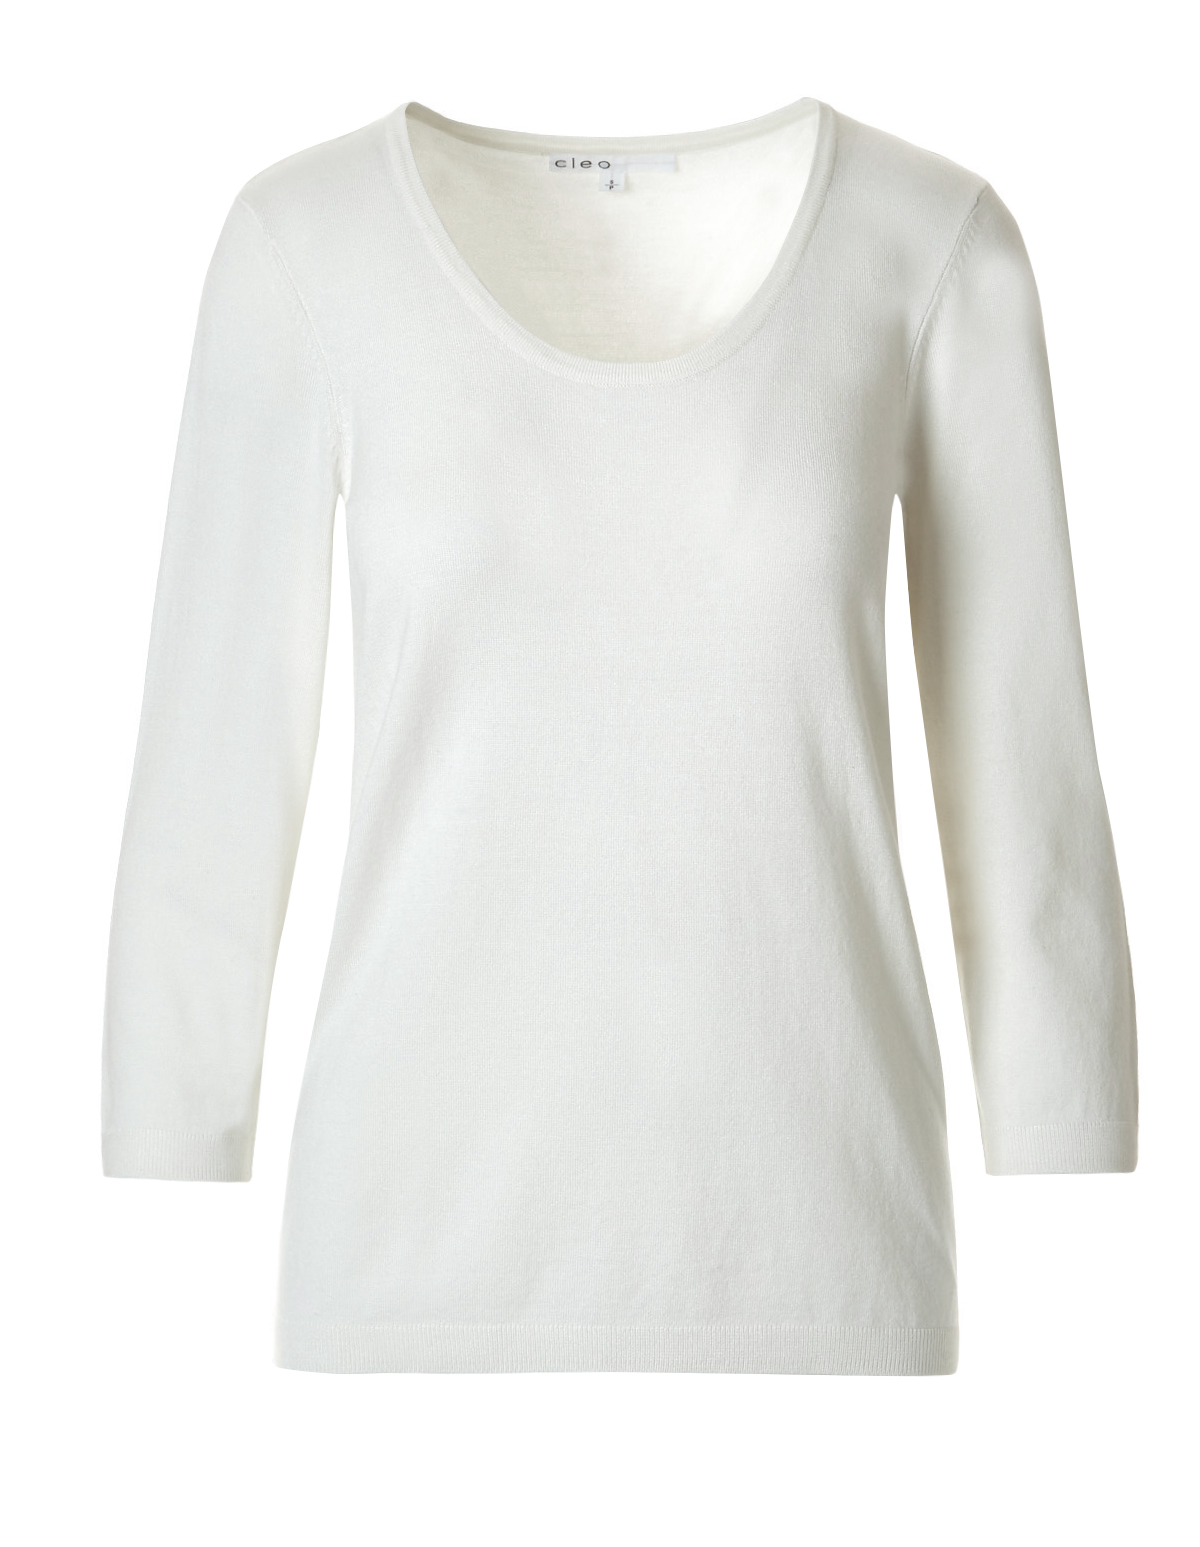 Ivory Pullover Sweater   Cleo